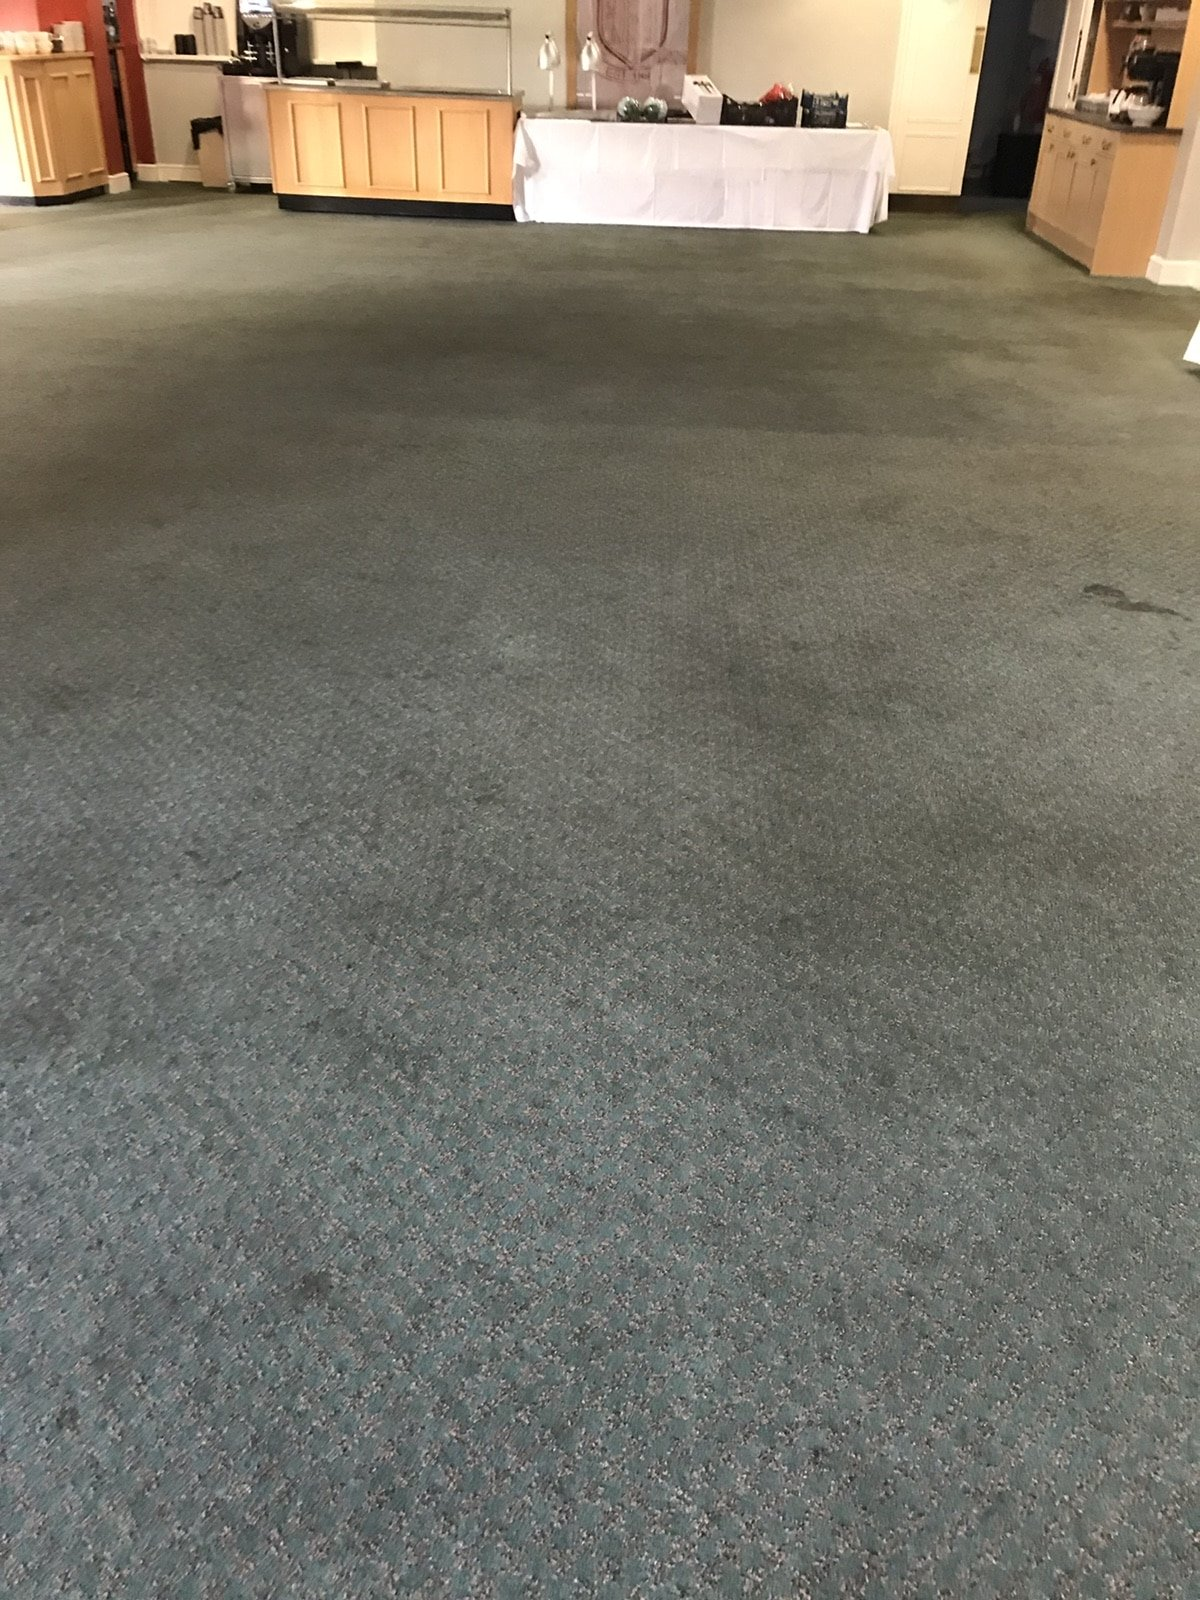 Carpet Cleaning Maidstone Kent Castle Cleaning Services Kent